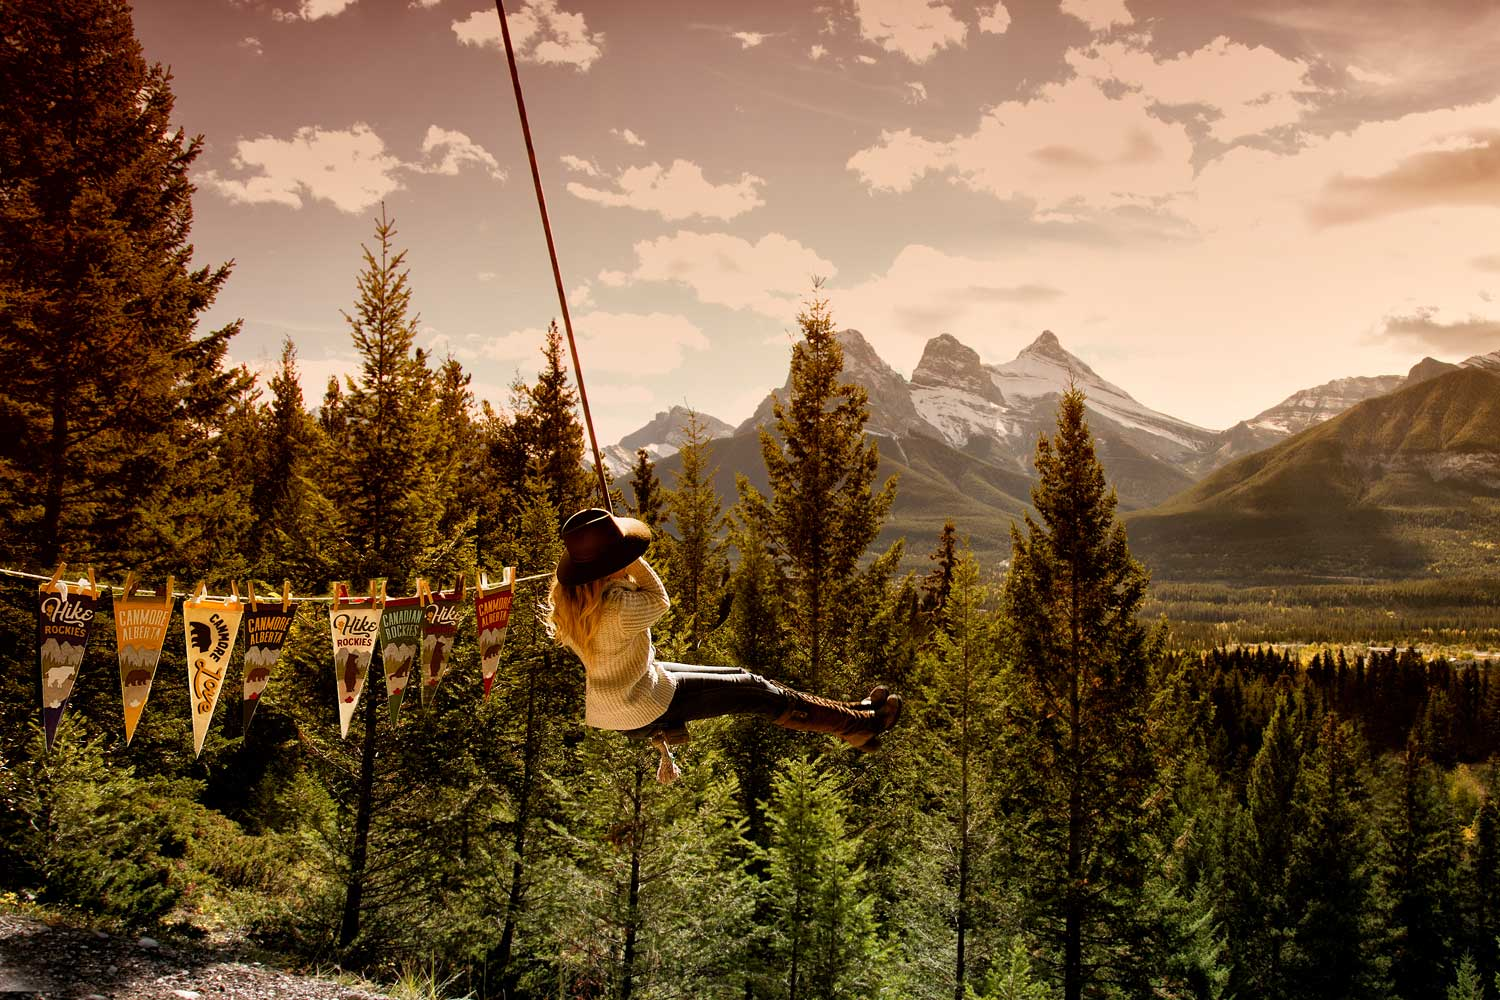 Canmore's rope swing is a memorable photo opp.